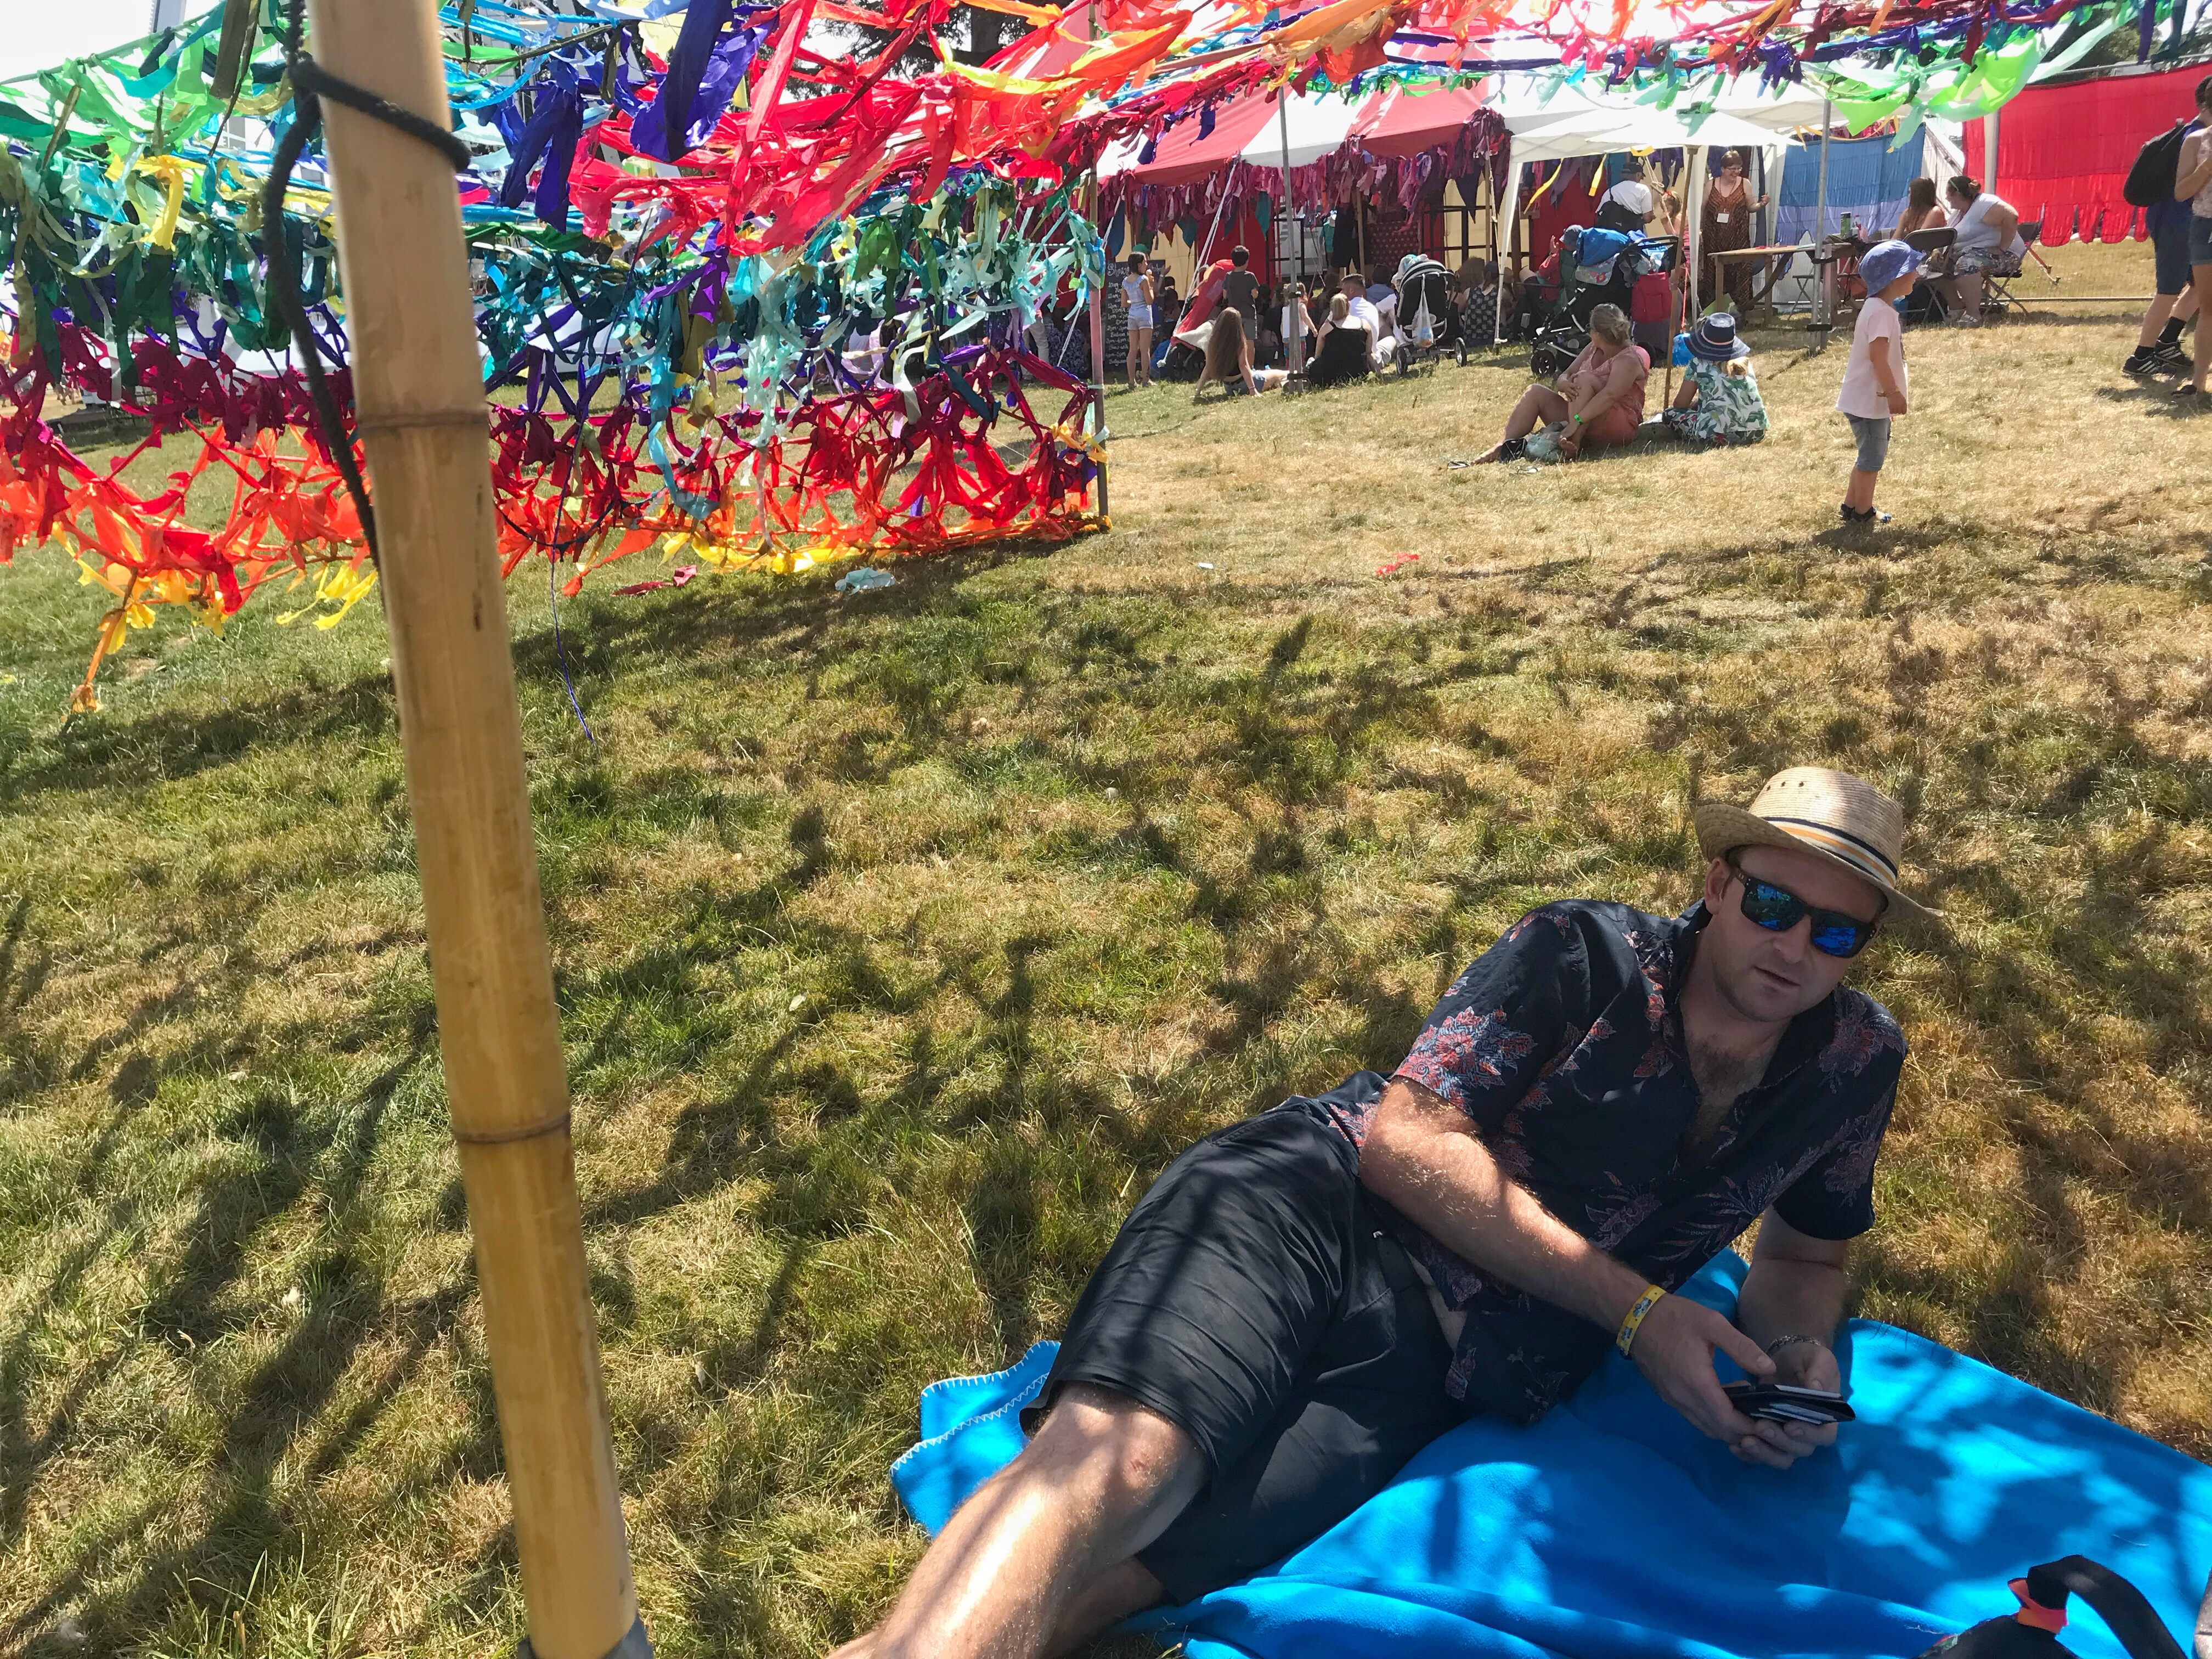 Relaxing at Cornbury Festival on a blanket under some rainbow coloured netting.